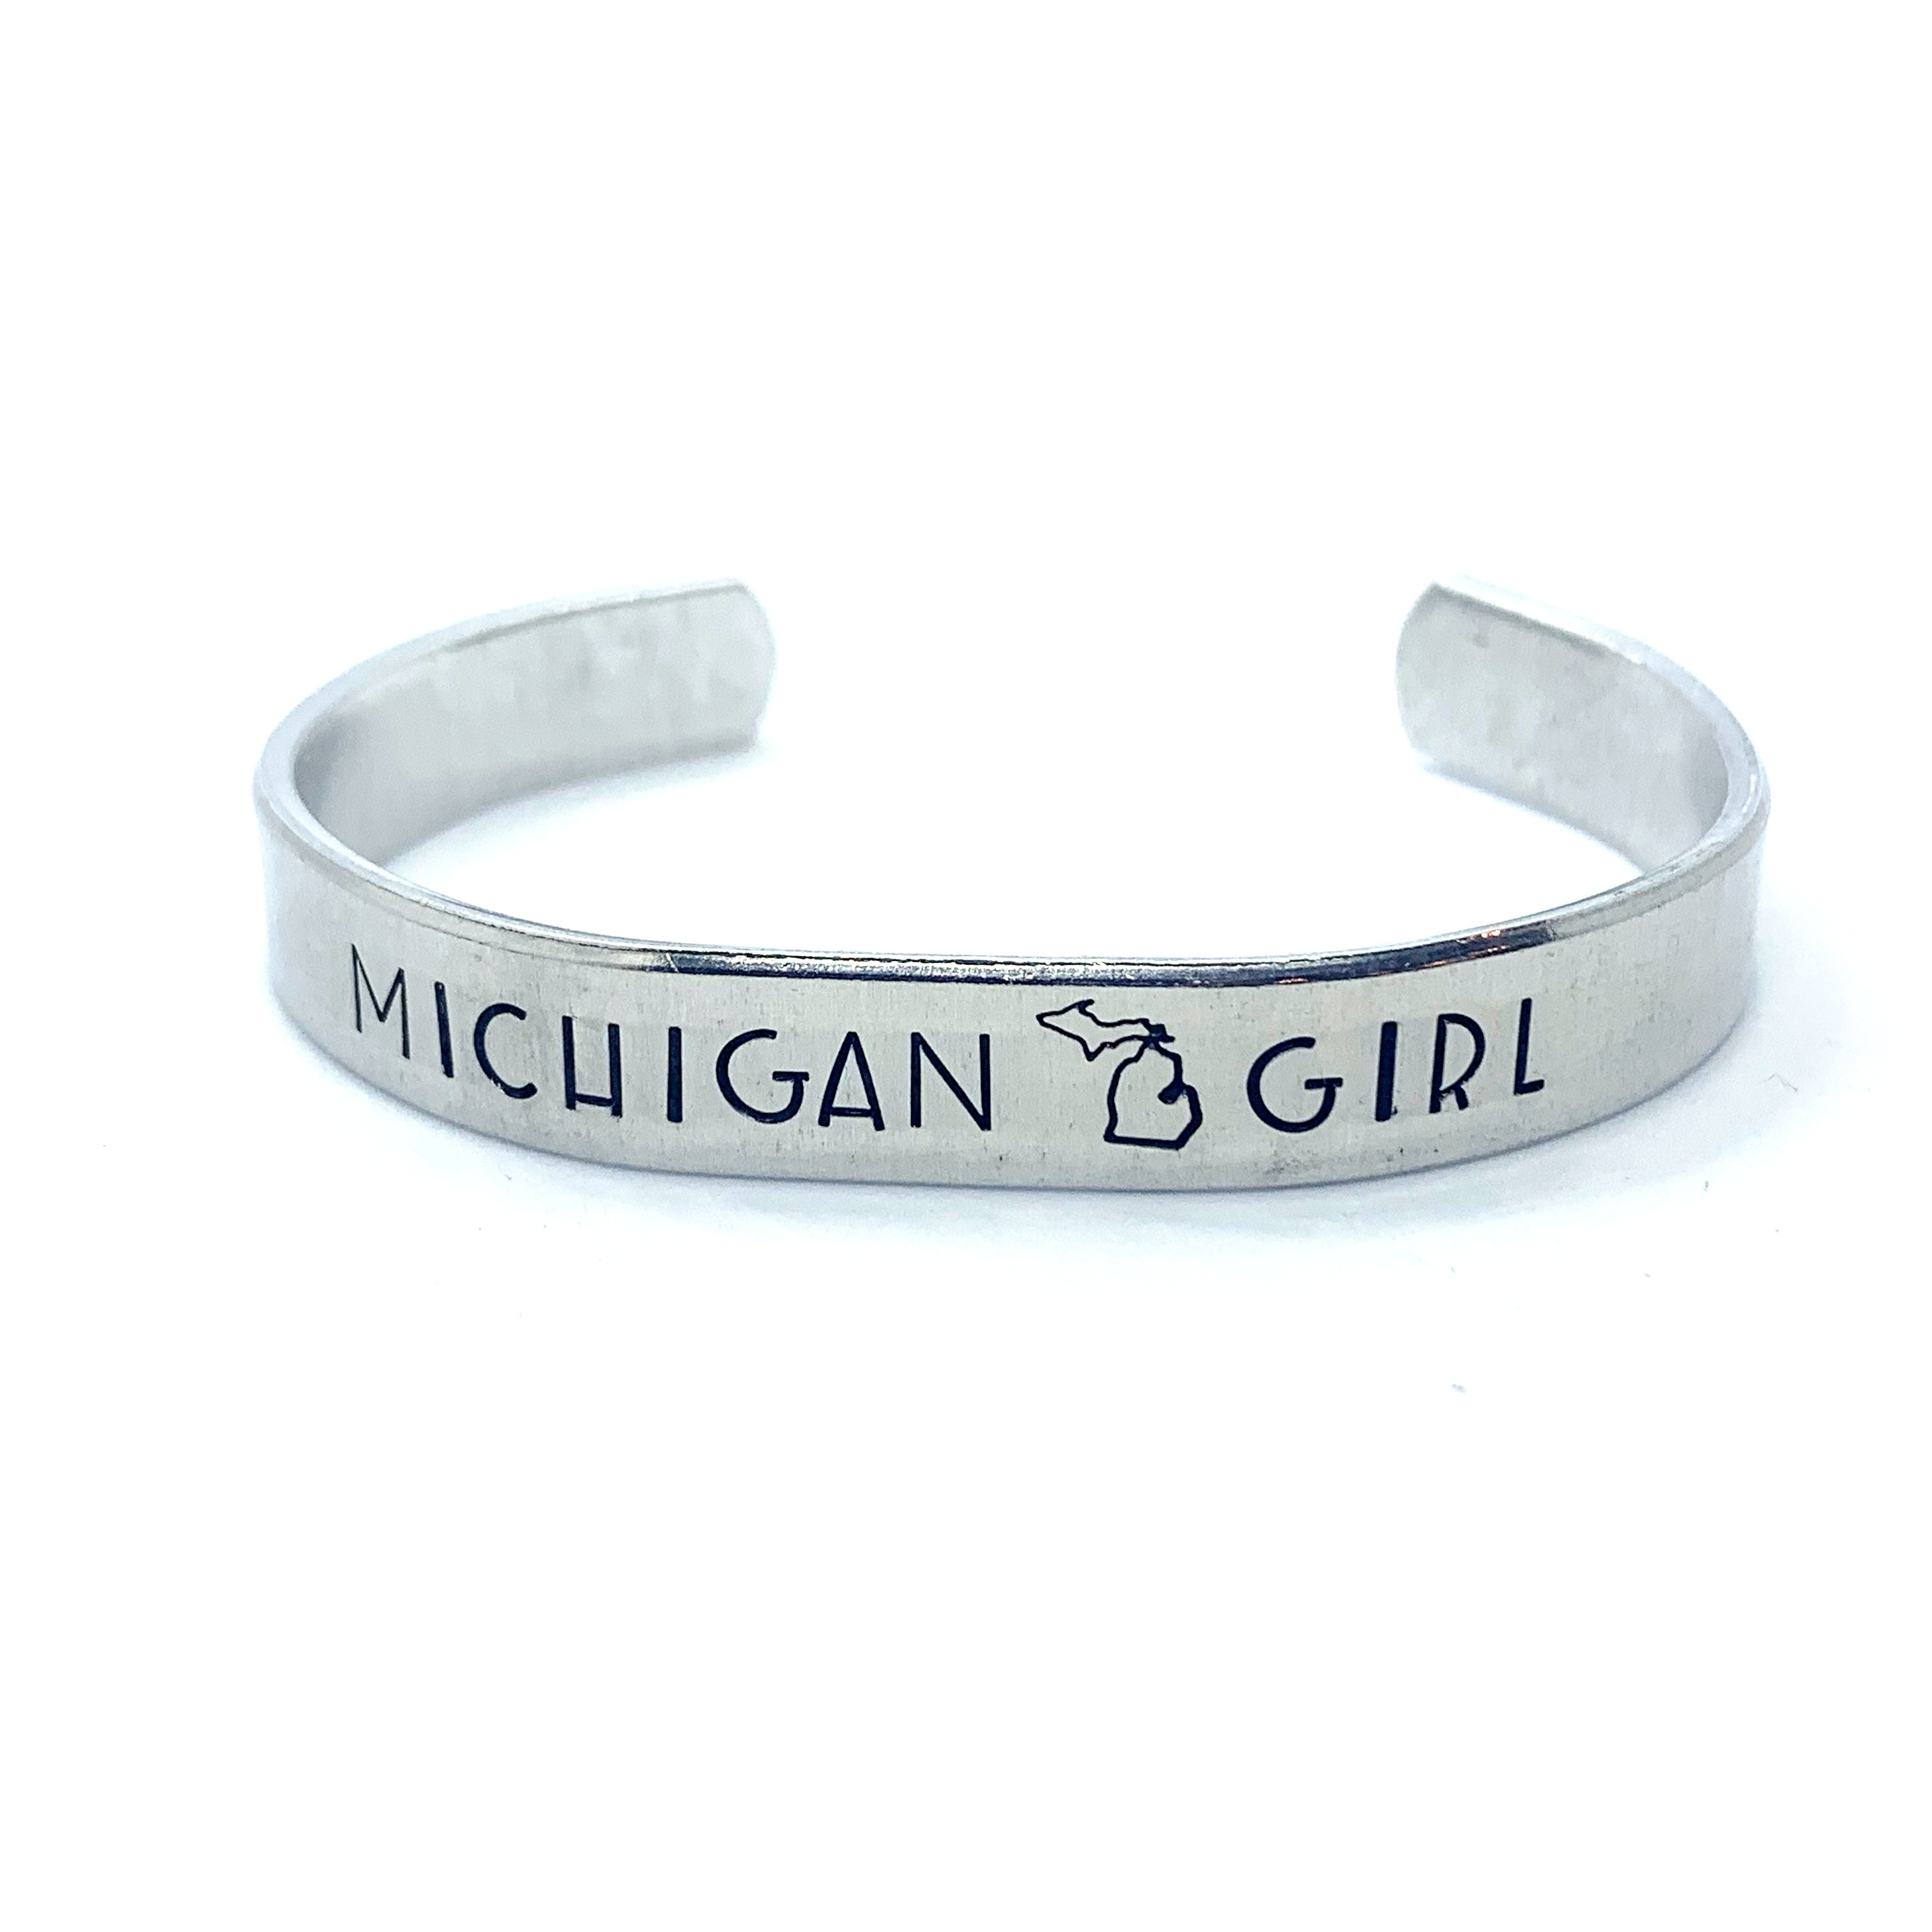 ⅜ inch Aluminum Cuff - Michigan Girl